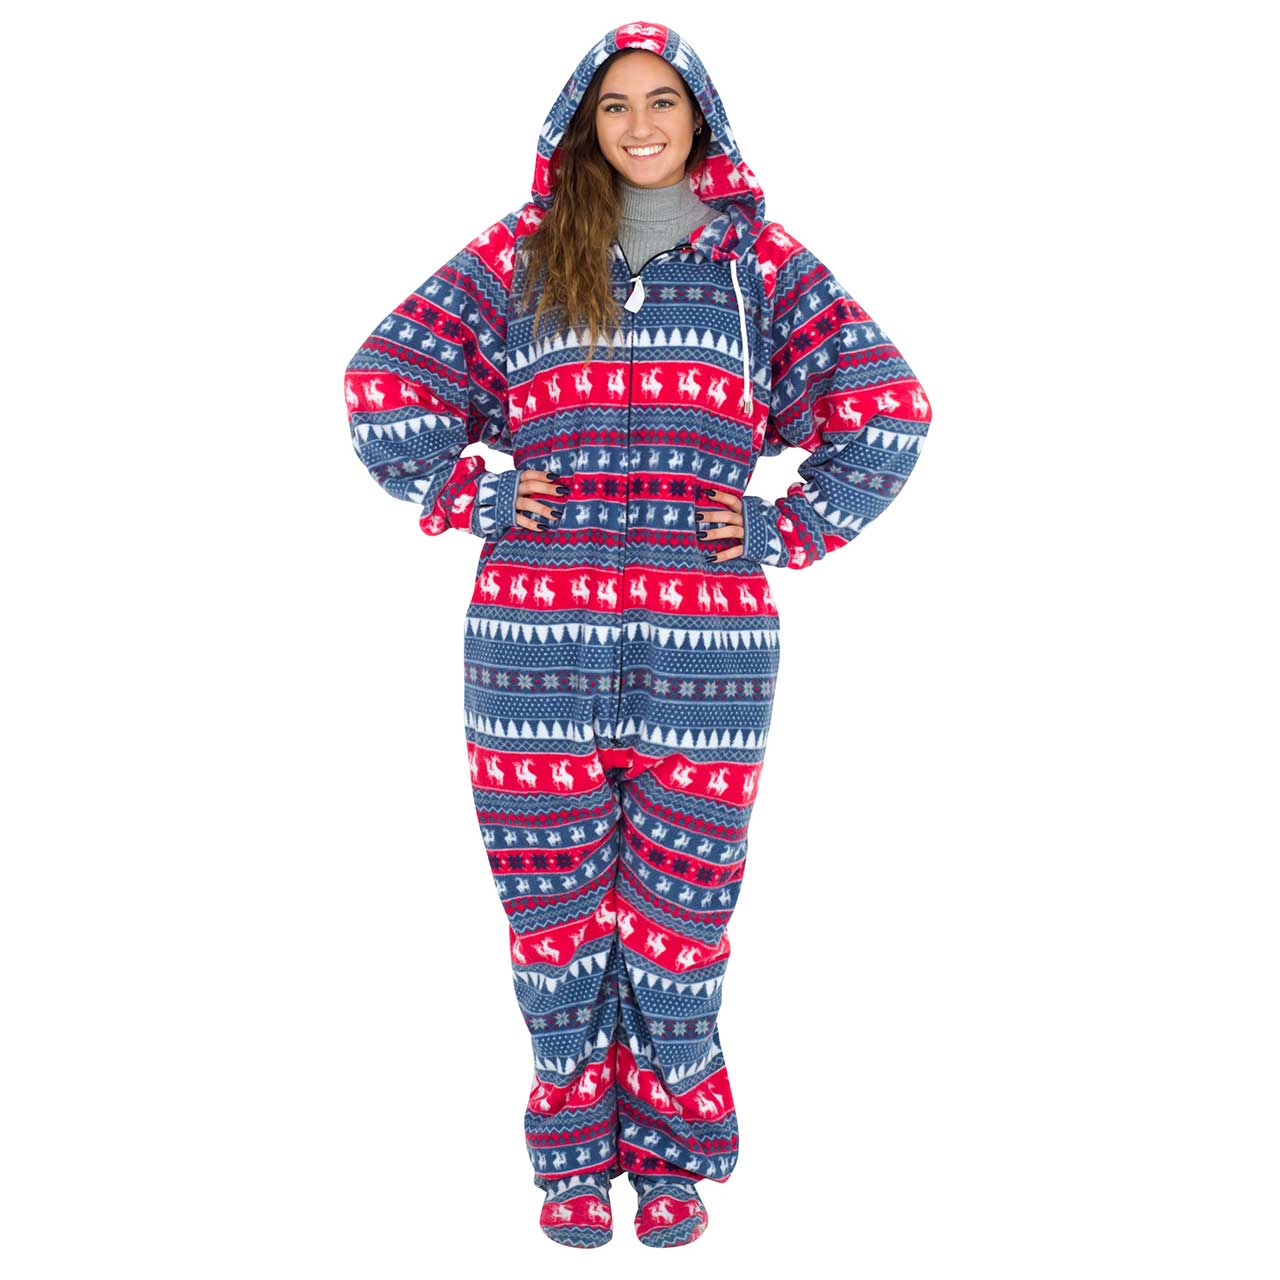 Red and Navy Humping Reindeer Ugly Christmas Pajama Suit with Hood,Ugly Christmas Sweaters | Funny Xmas Sweaters for Men and Women